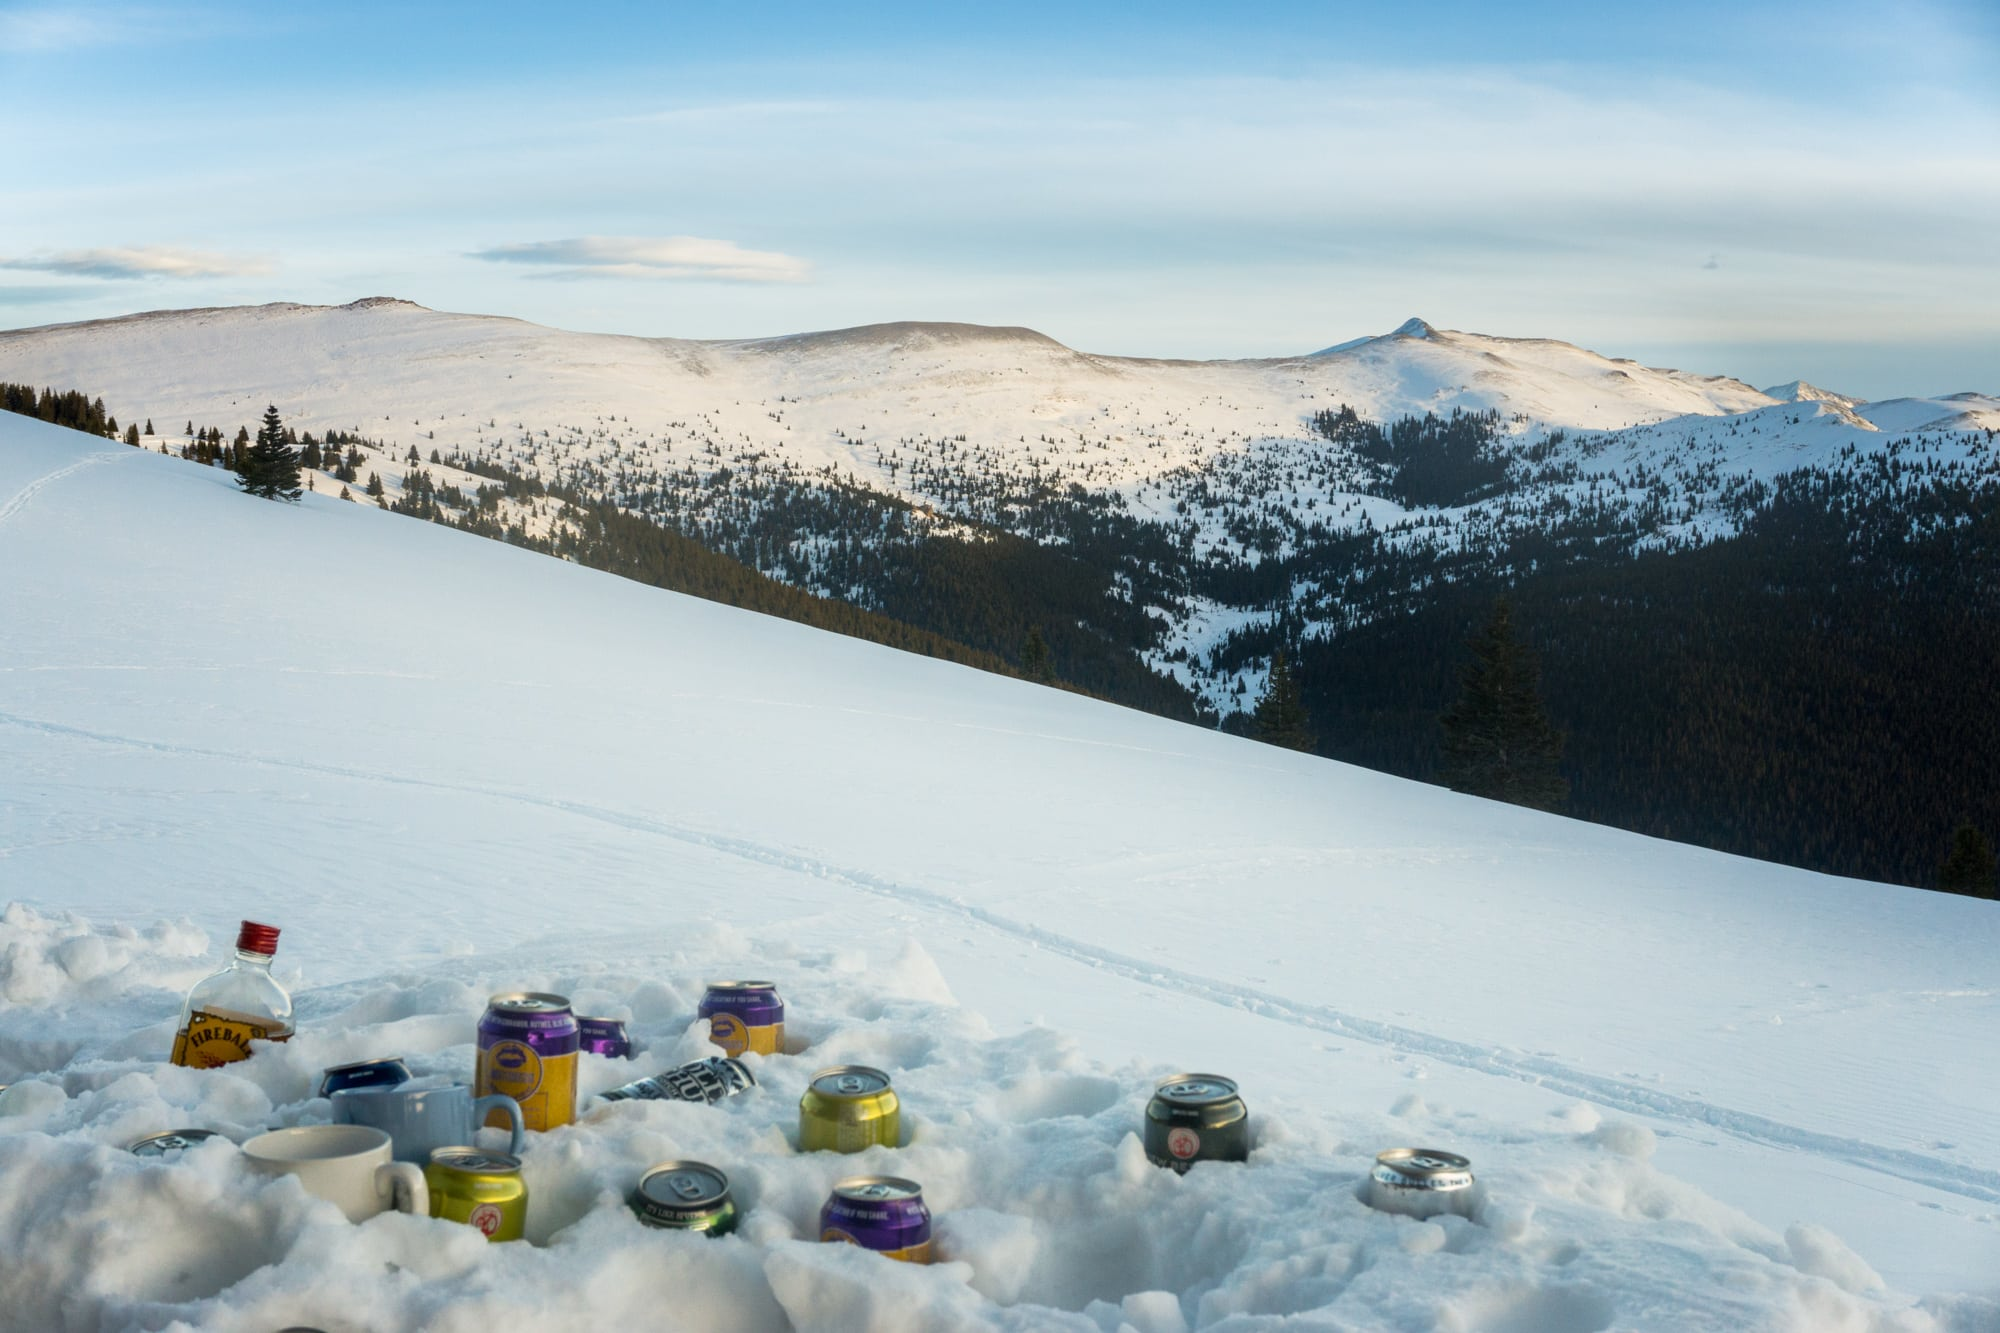 Reasons to take a backcountry hut trip - #12 - Backcountry beer coolers